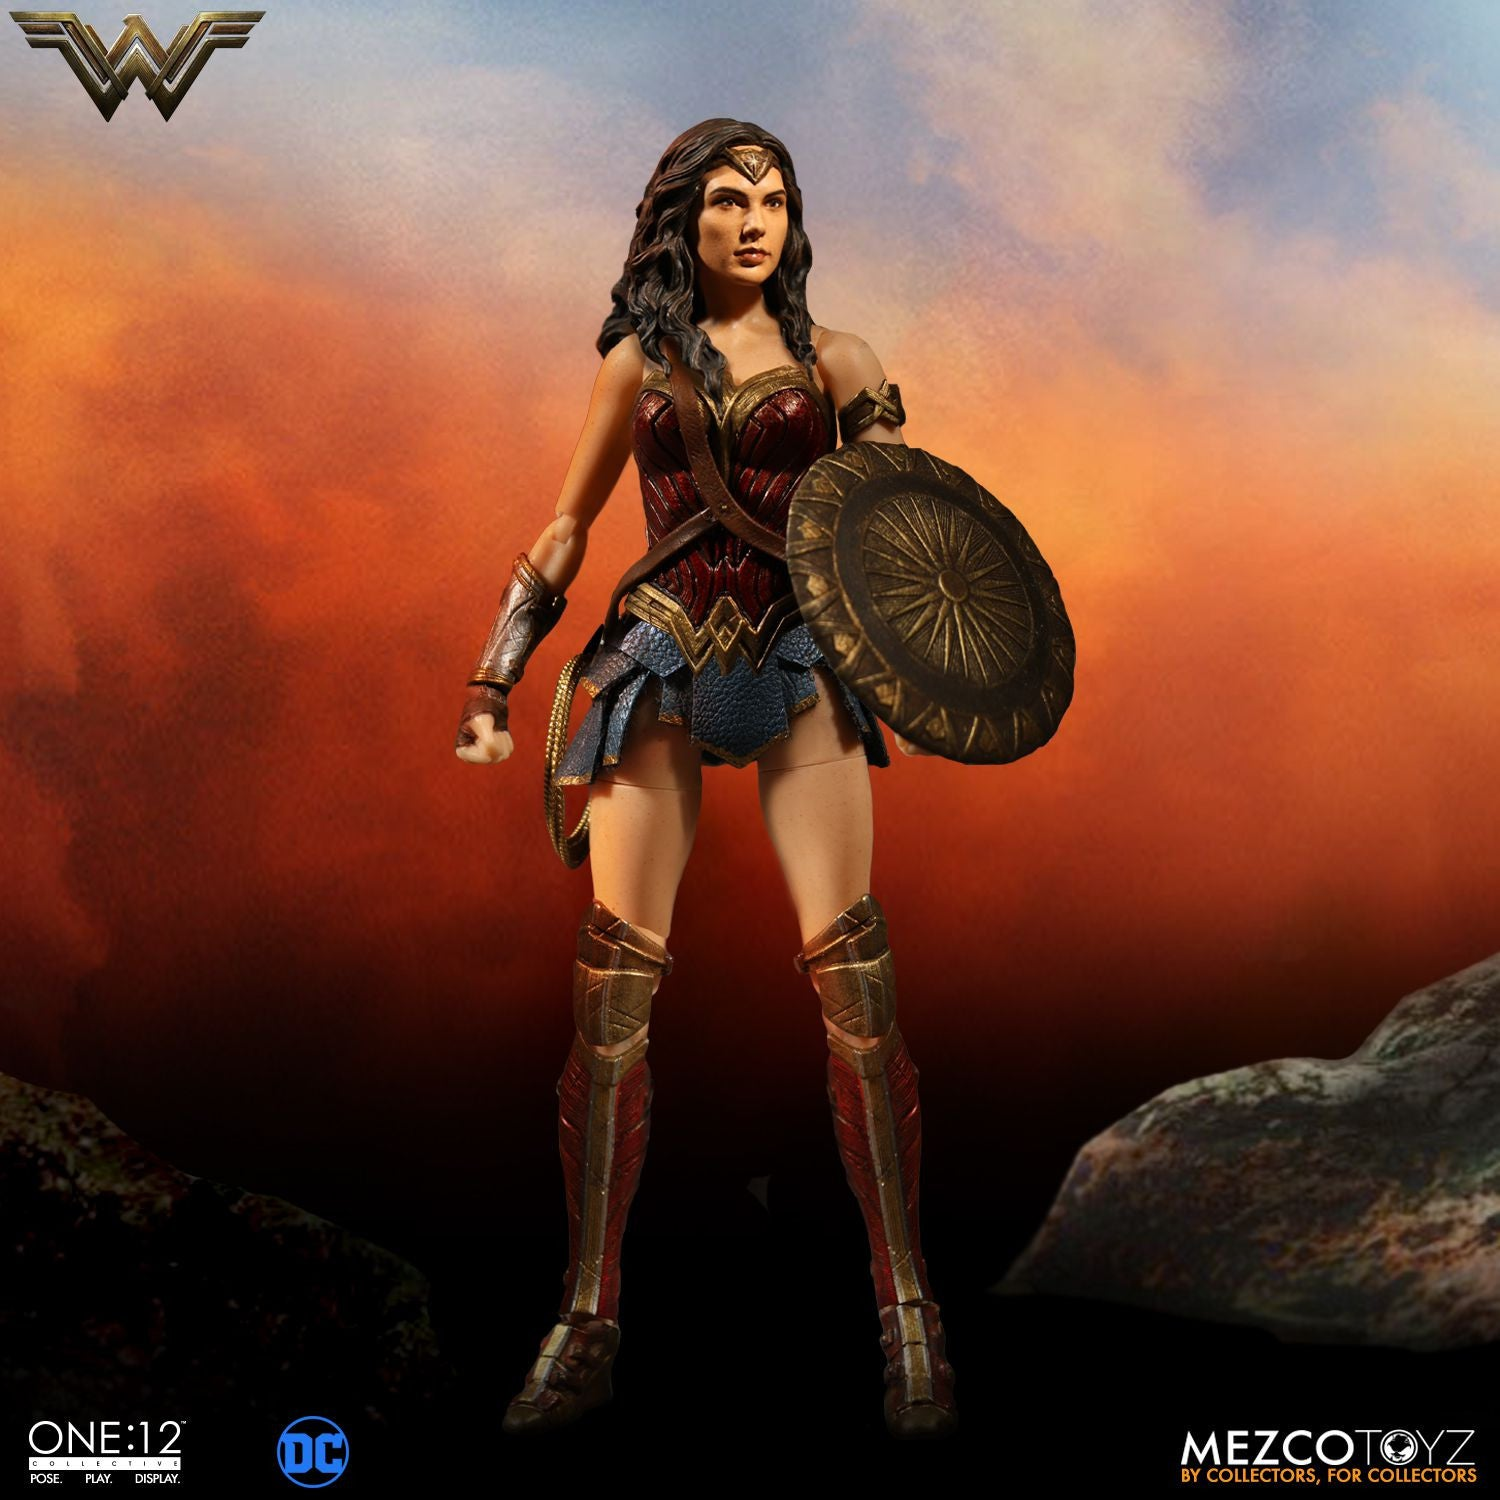 Mezco - One:12 Collective - Wonder Woman